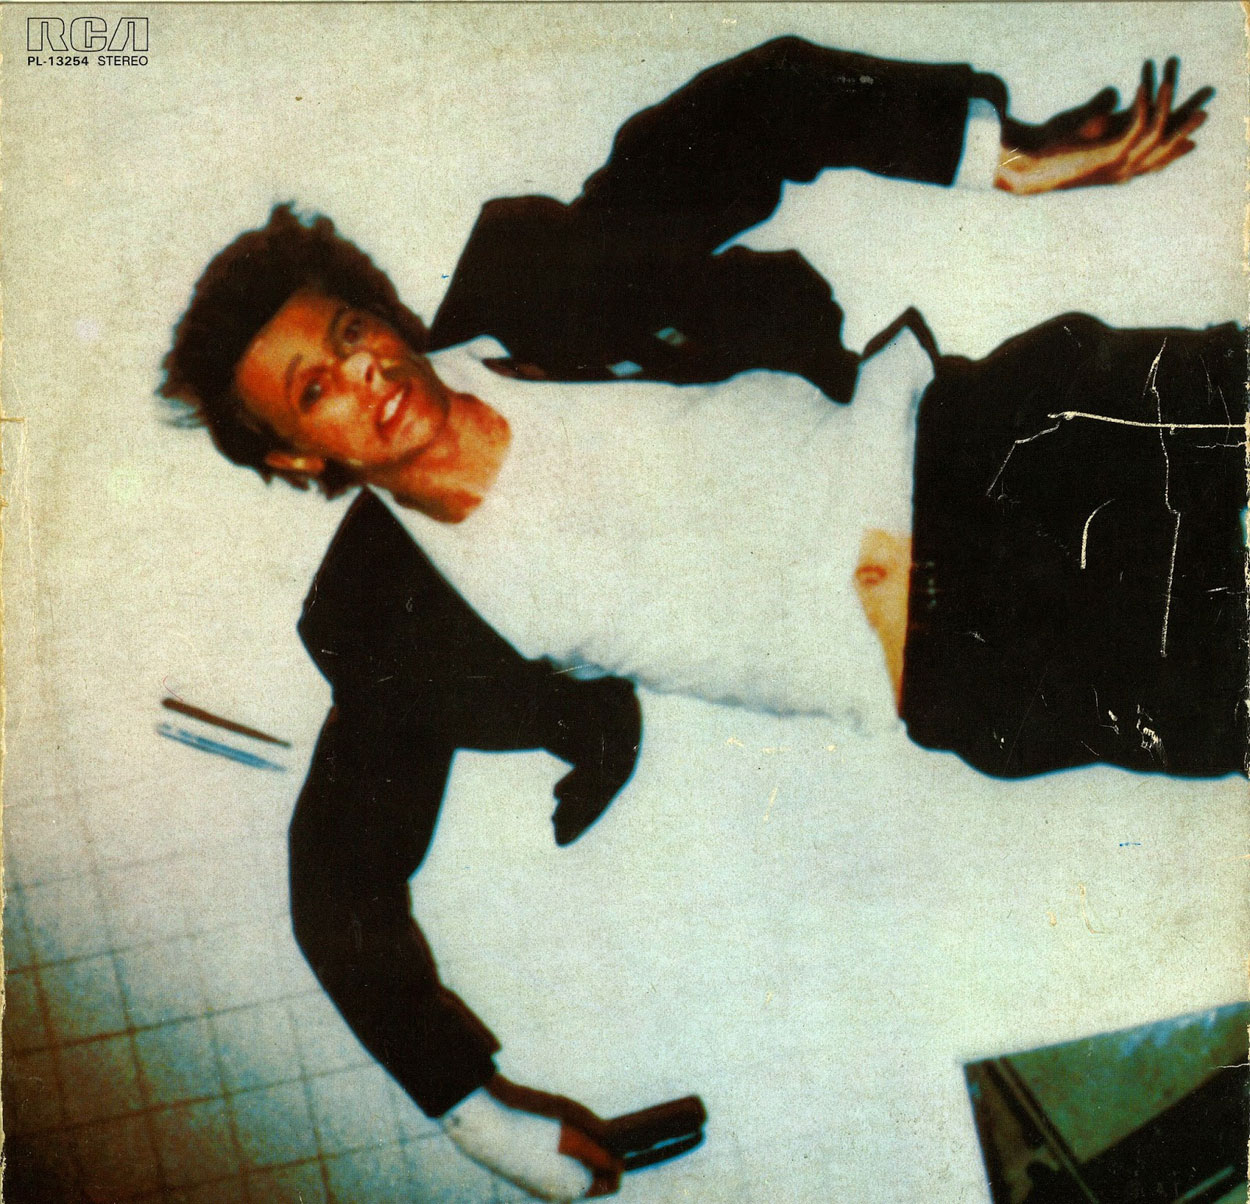 Lodger - Album - Artwork - 1979